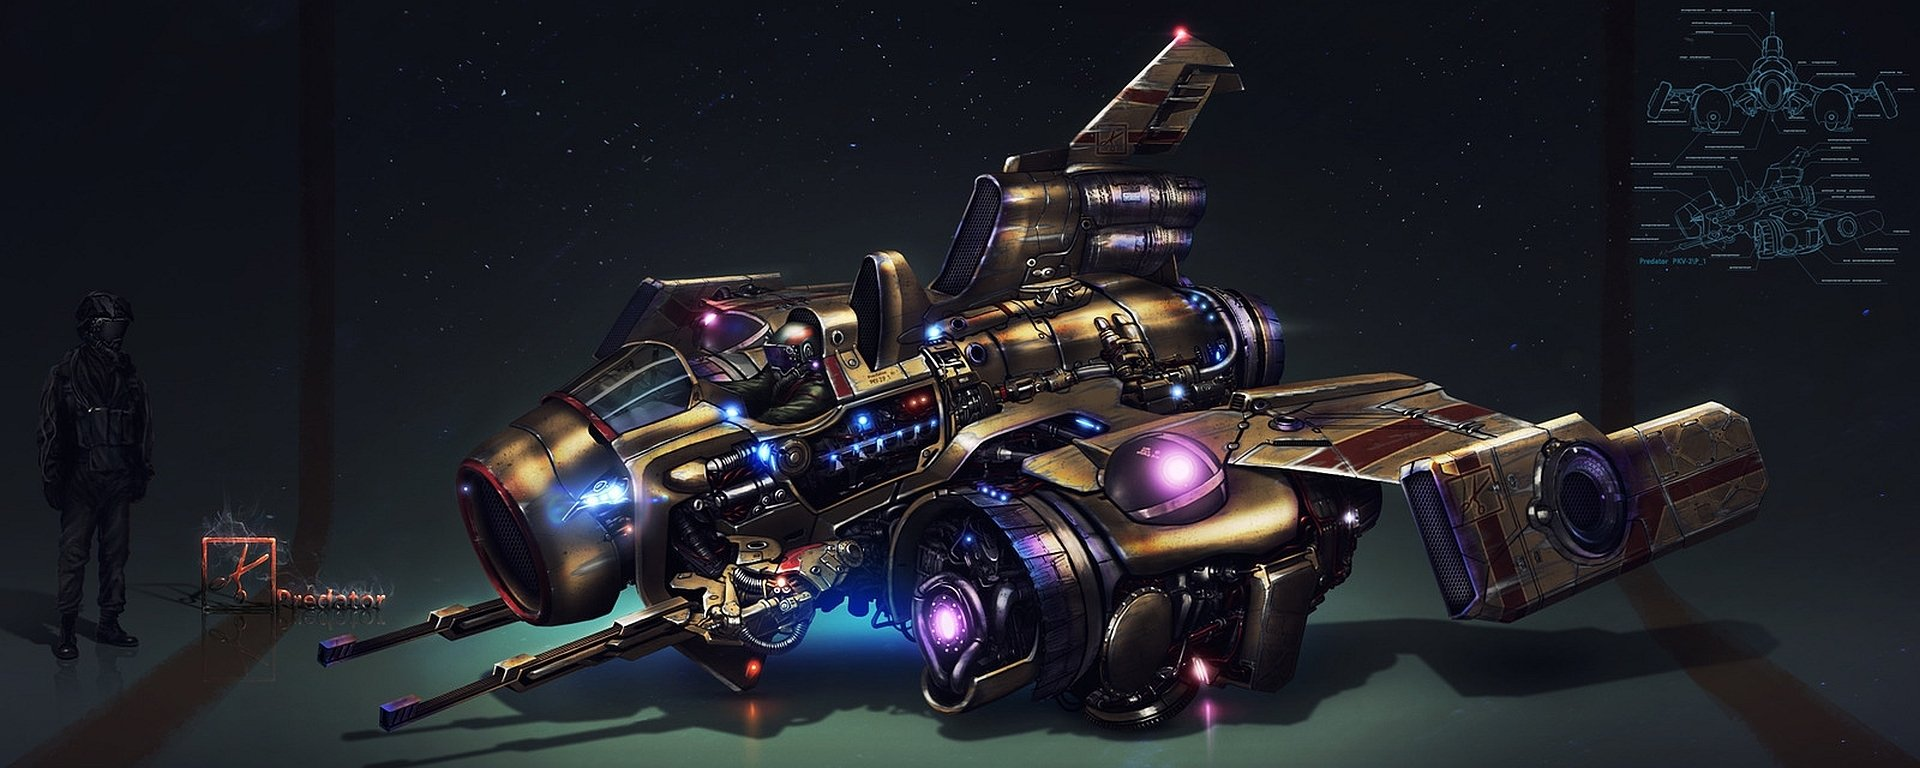 Spaceship Wallpaper And Background Image